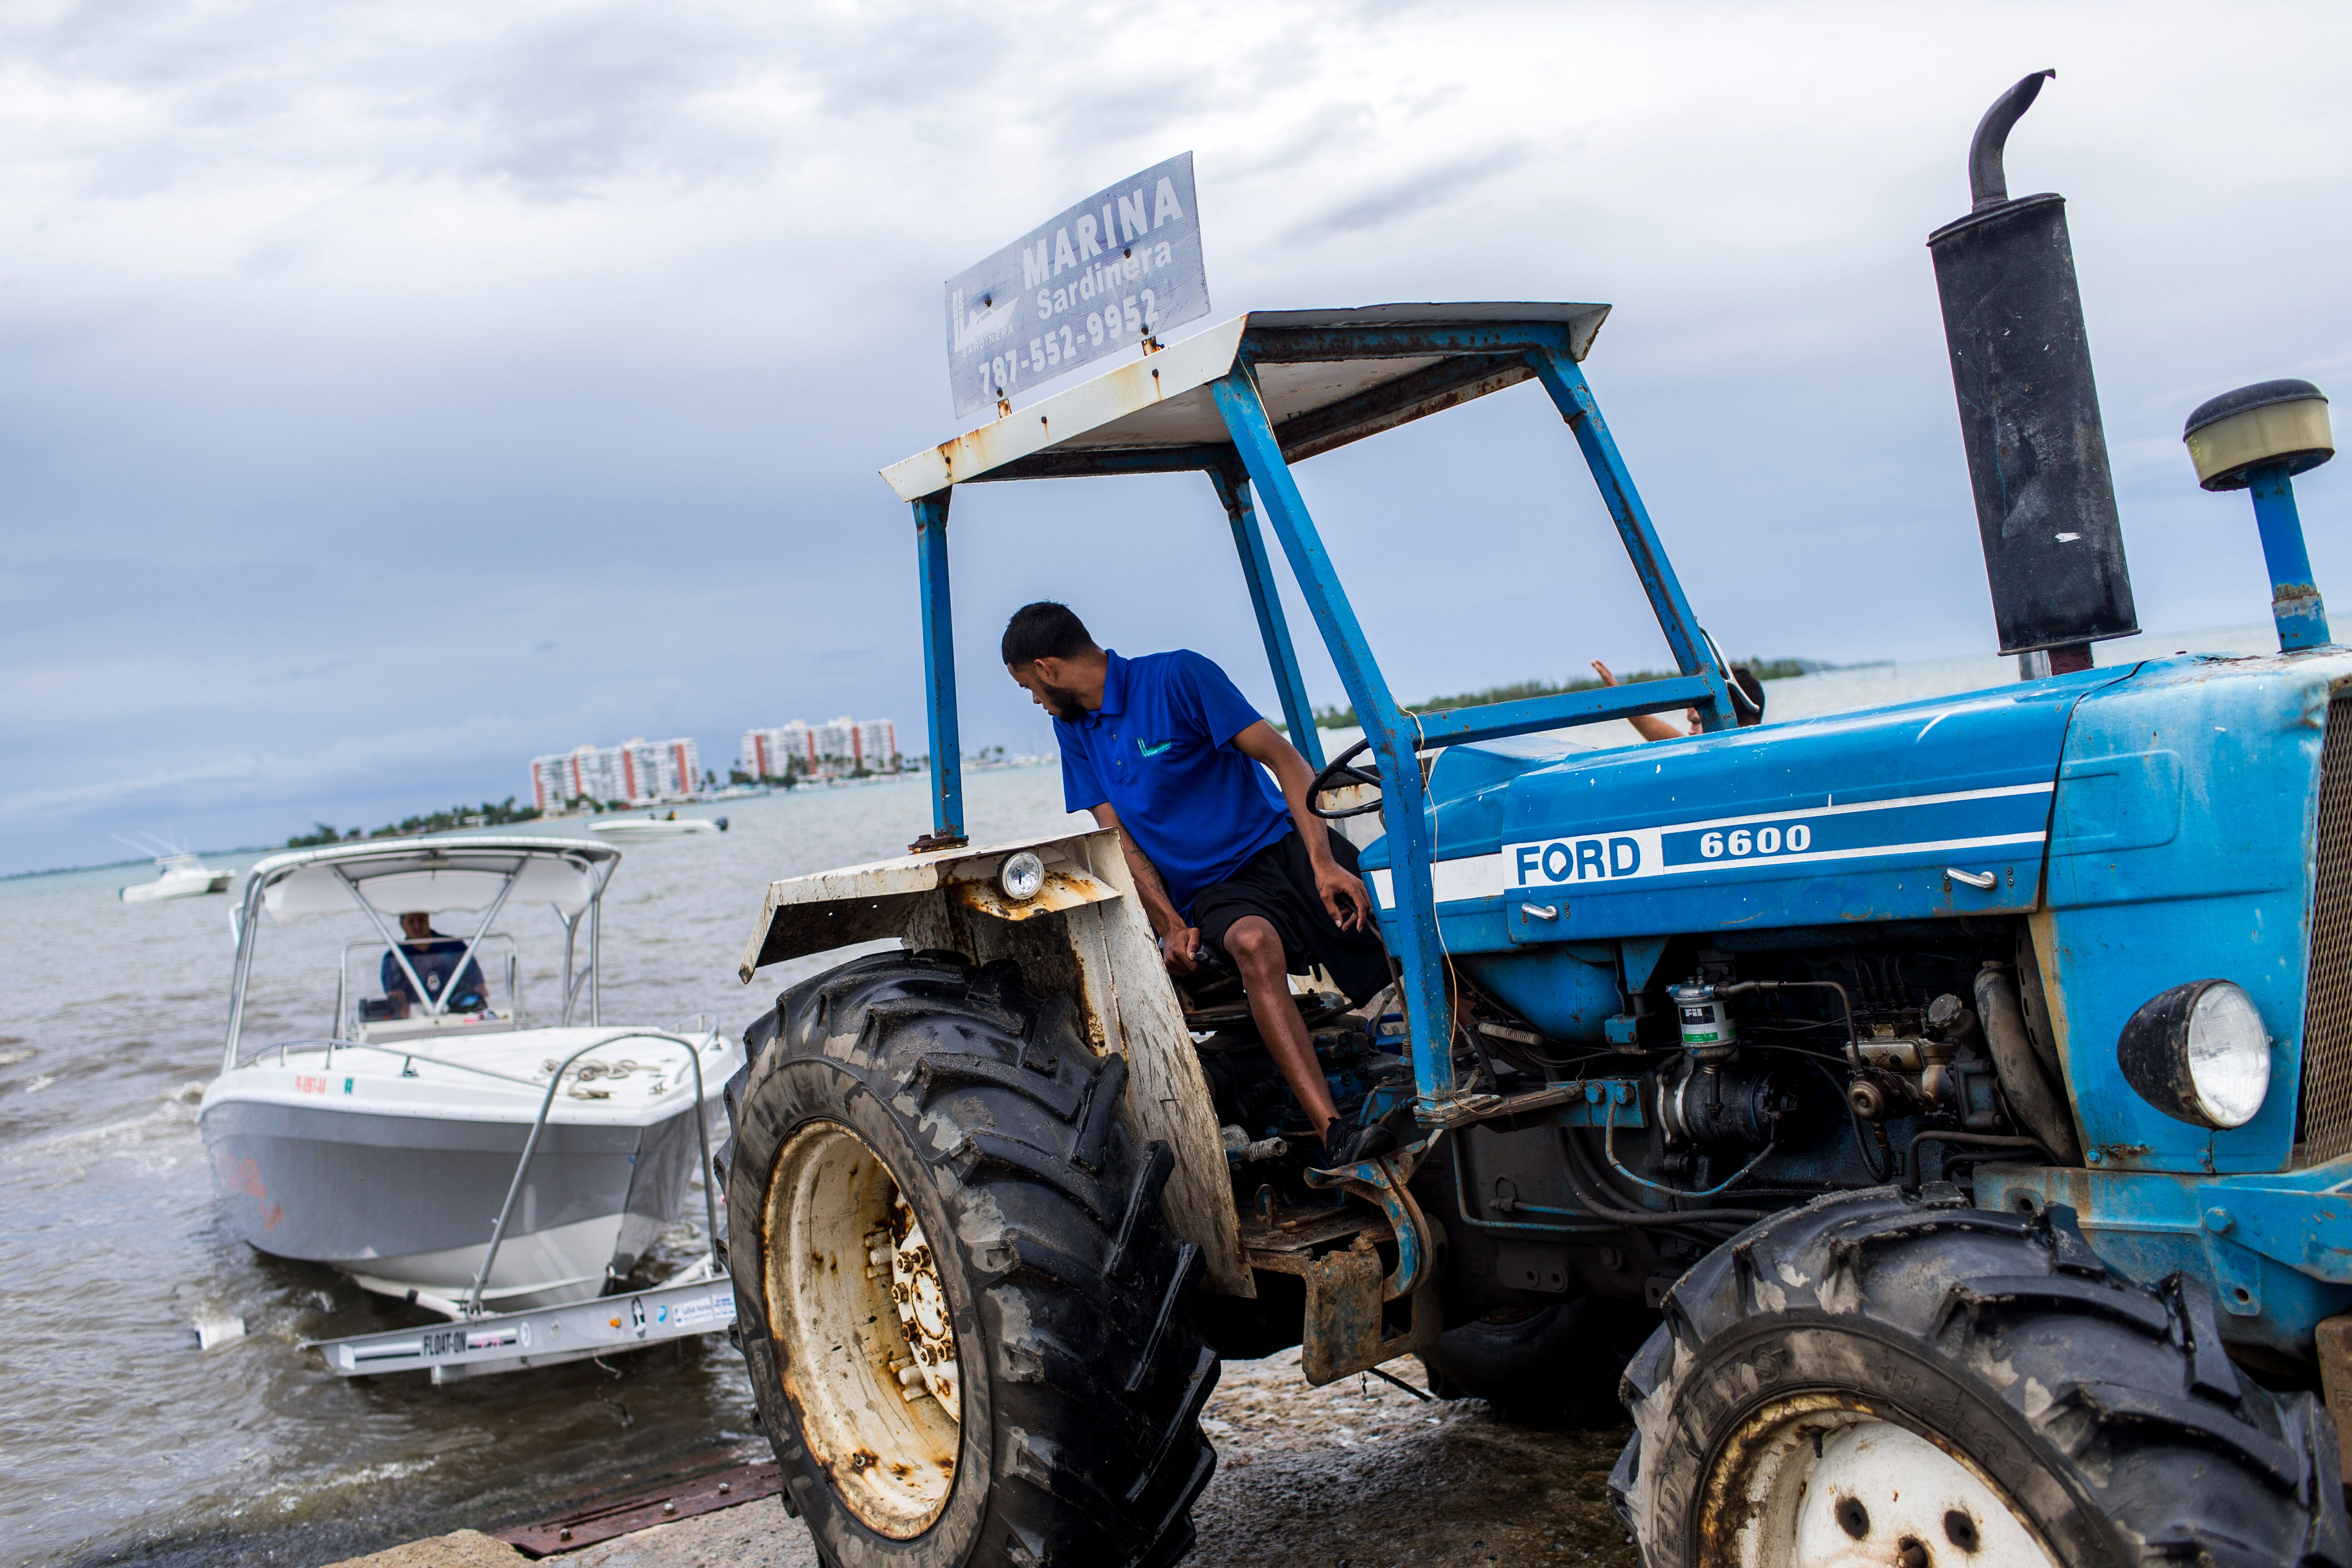 Boat owners prepare to take their vessels out of the water at Sardinera Marina in Fajardo.